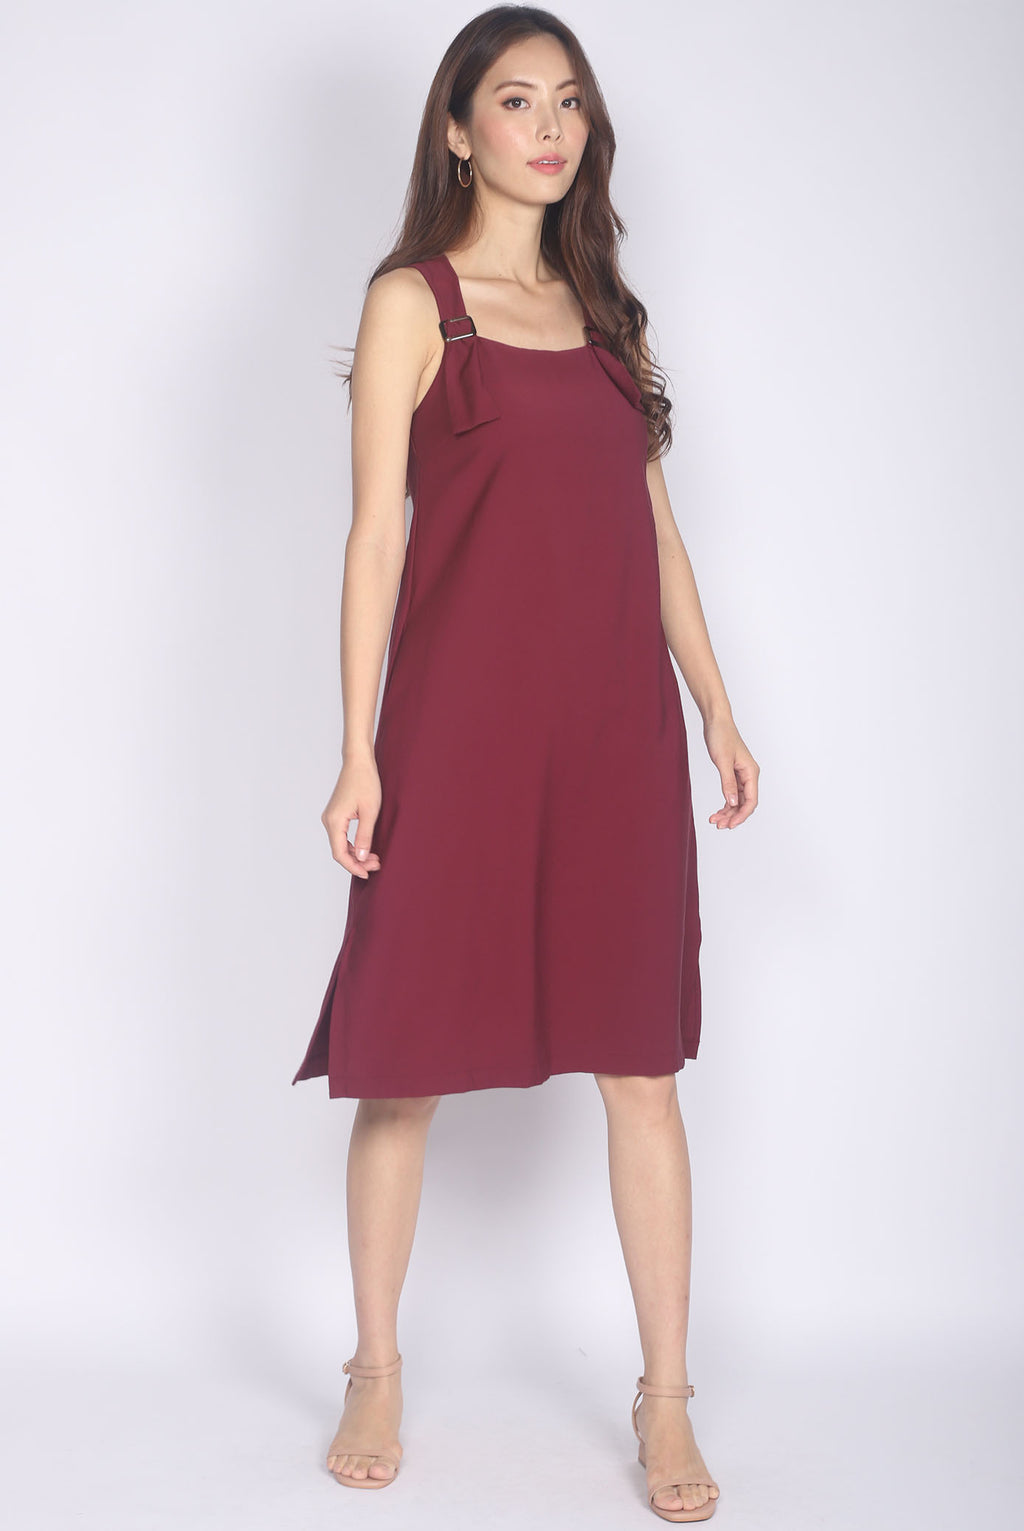 Kalera Buckle Shoulder Dress In Wine Red